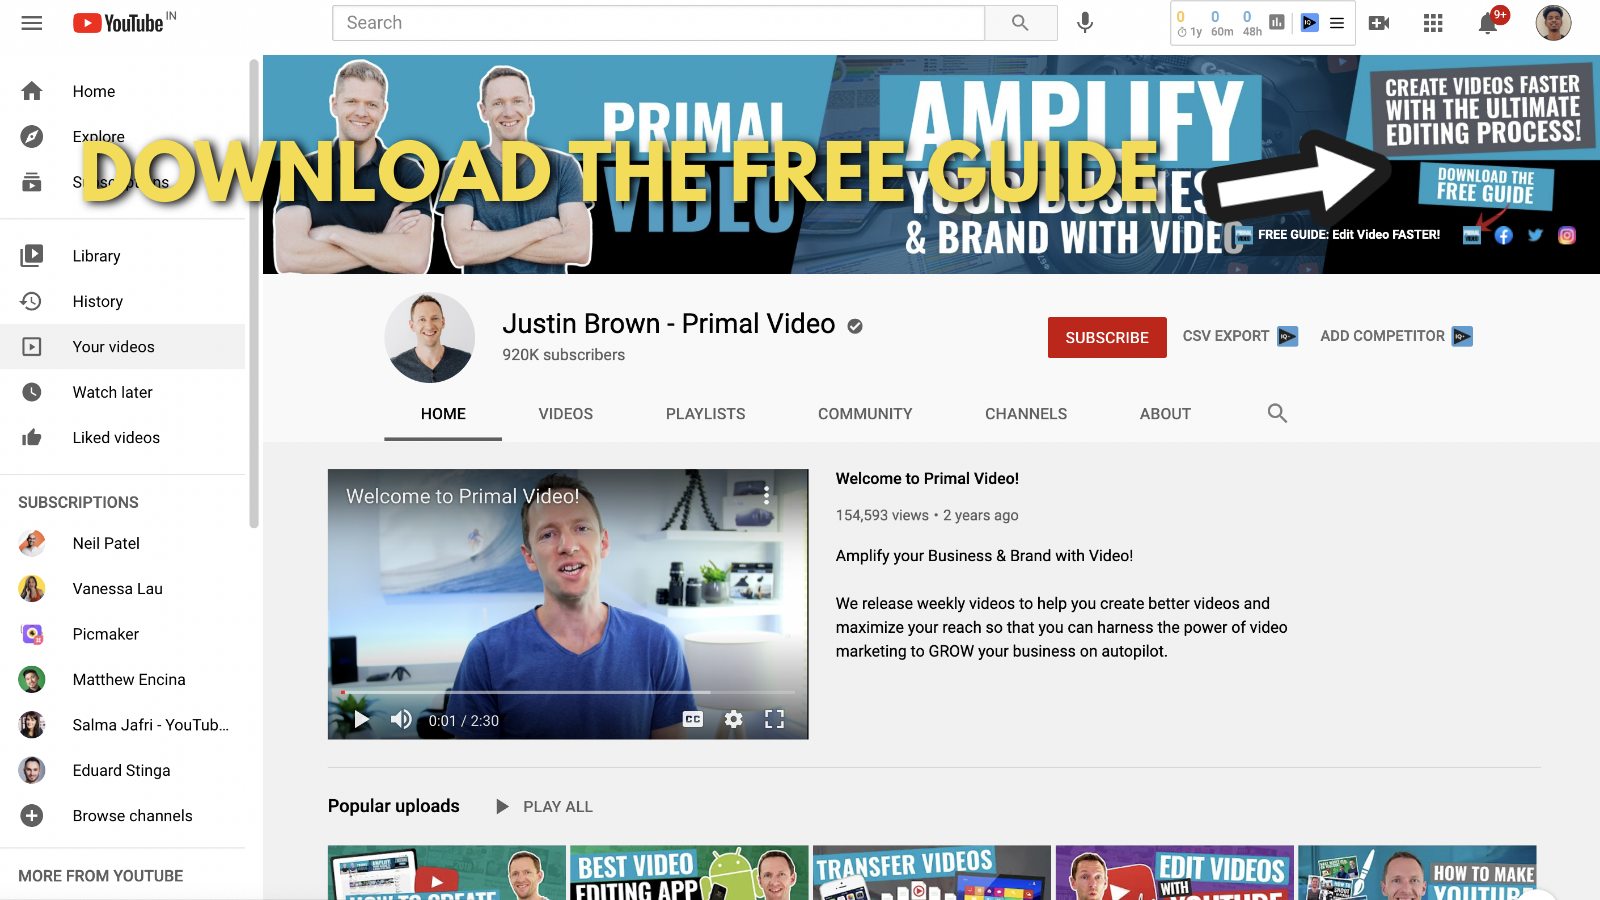 A screenshot of Primal video's YouTube channel 8